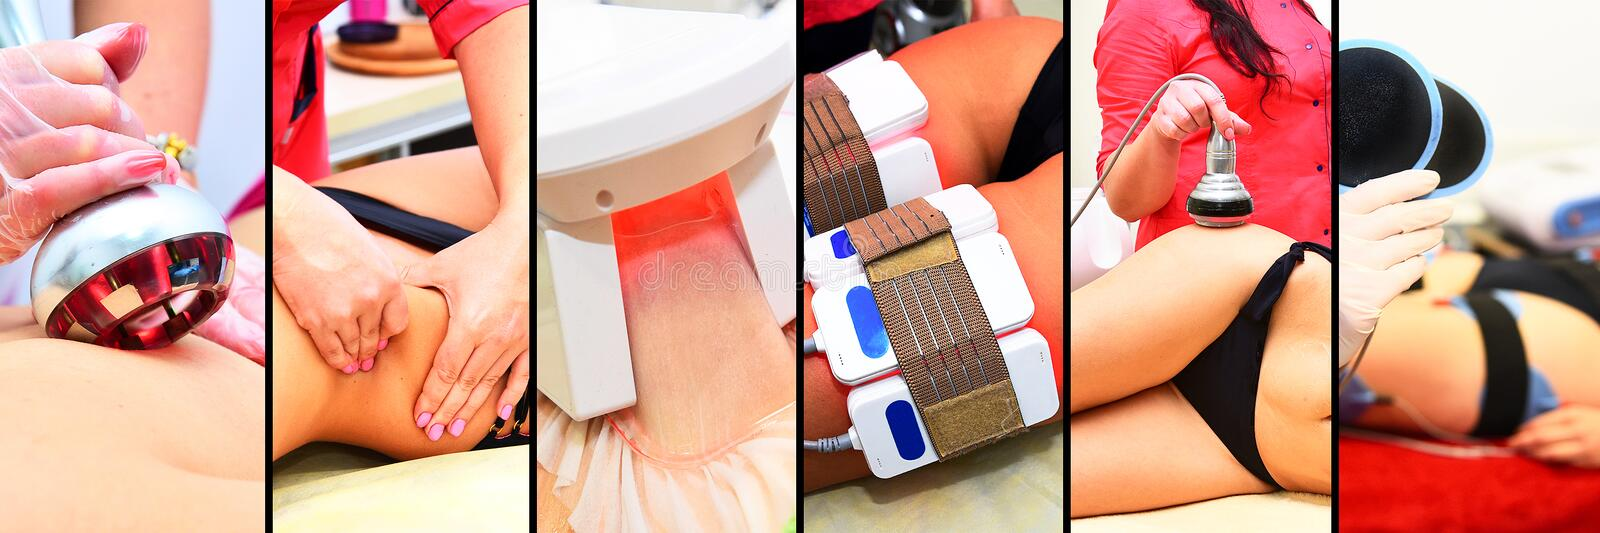 Different types of hardware spa procedures for cellulite reduction and weight loss. Myostimulation, vacuum massage, lipolaser, rad. Iofraction lifting. Collage stock images